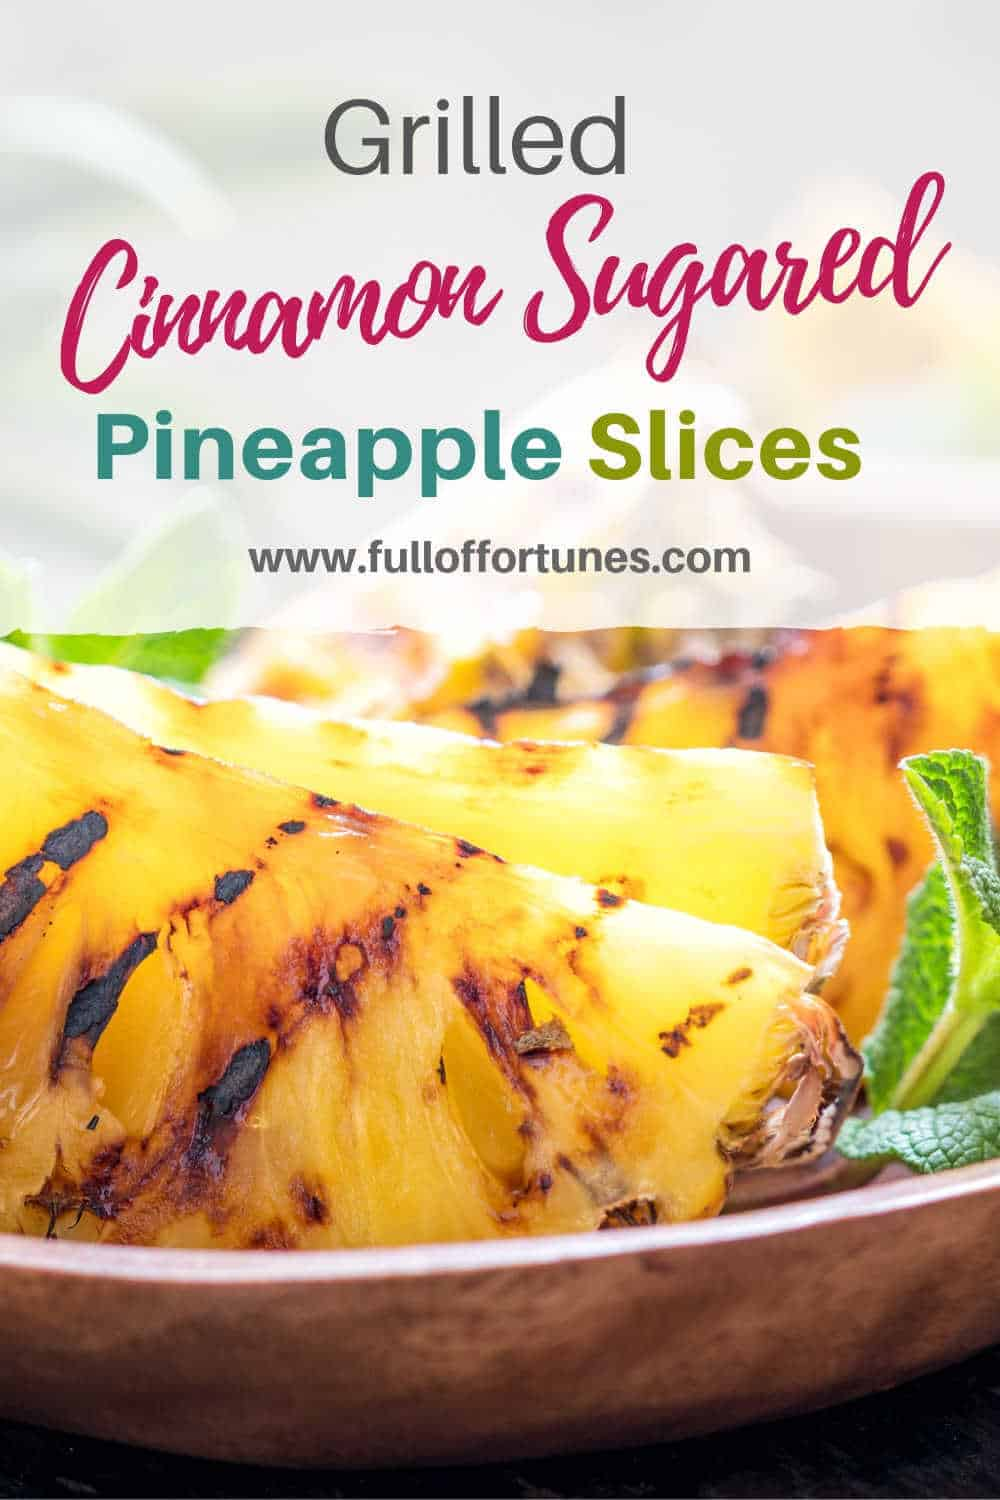 Grilled Cinnamon Sugared PineappleSlices